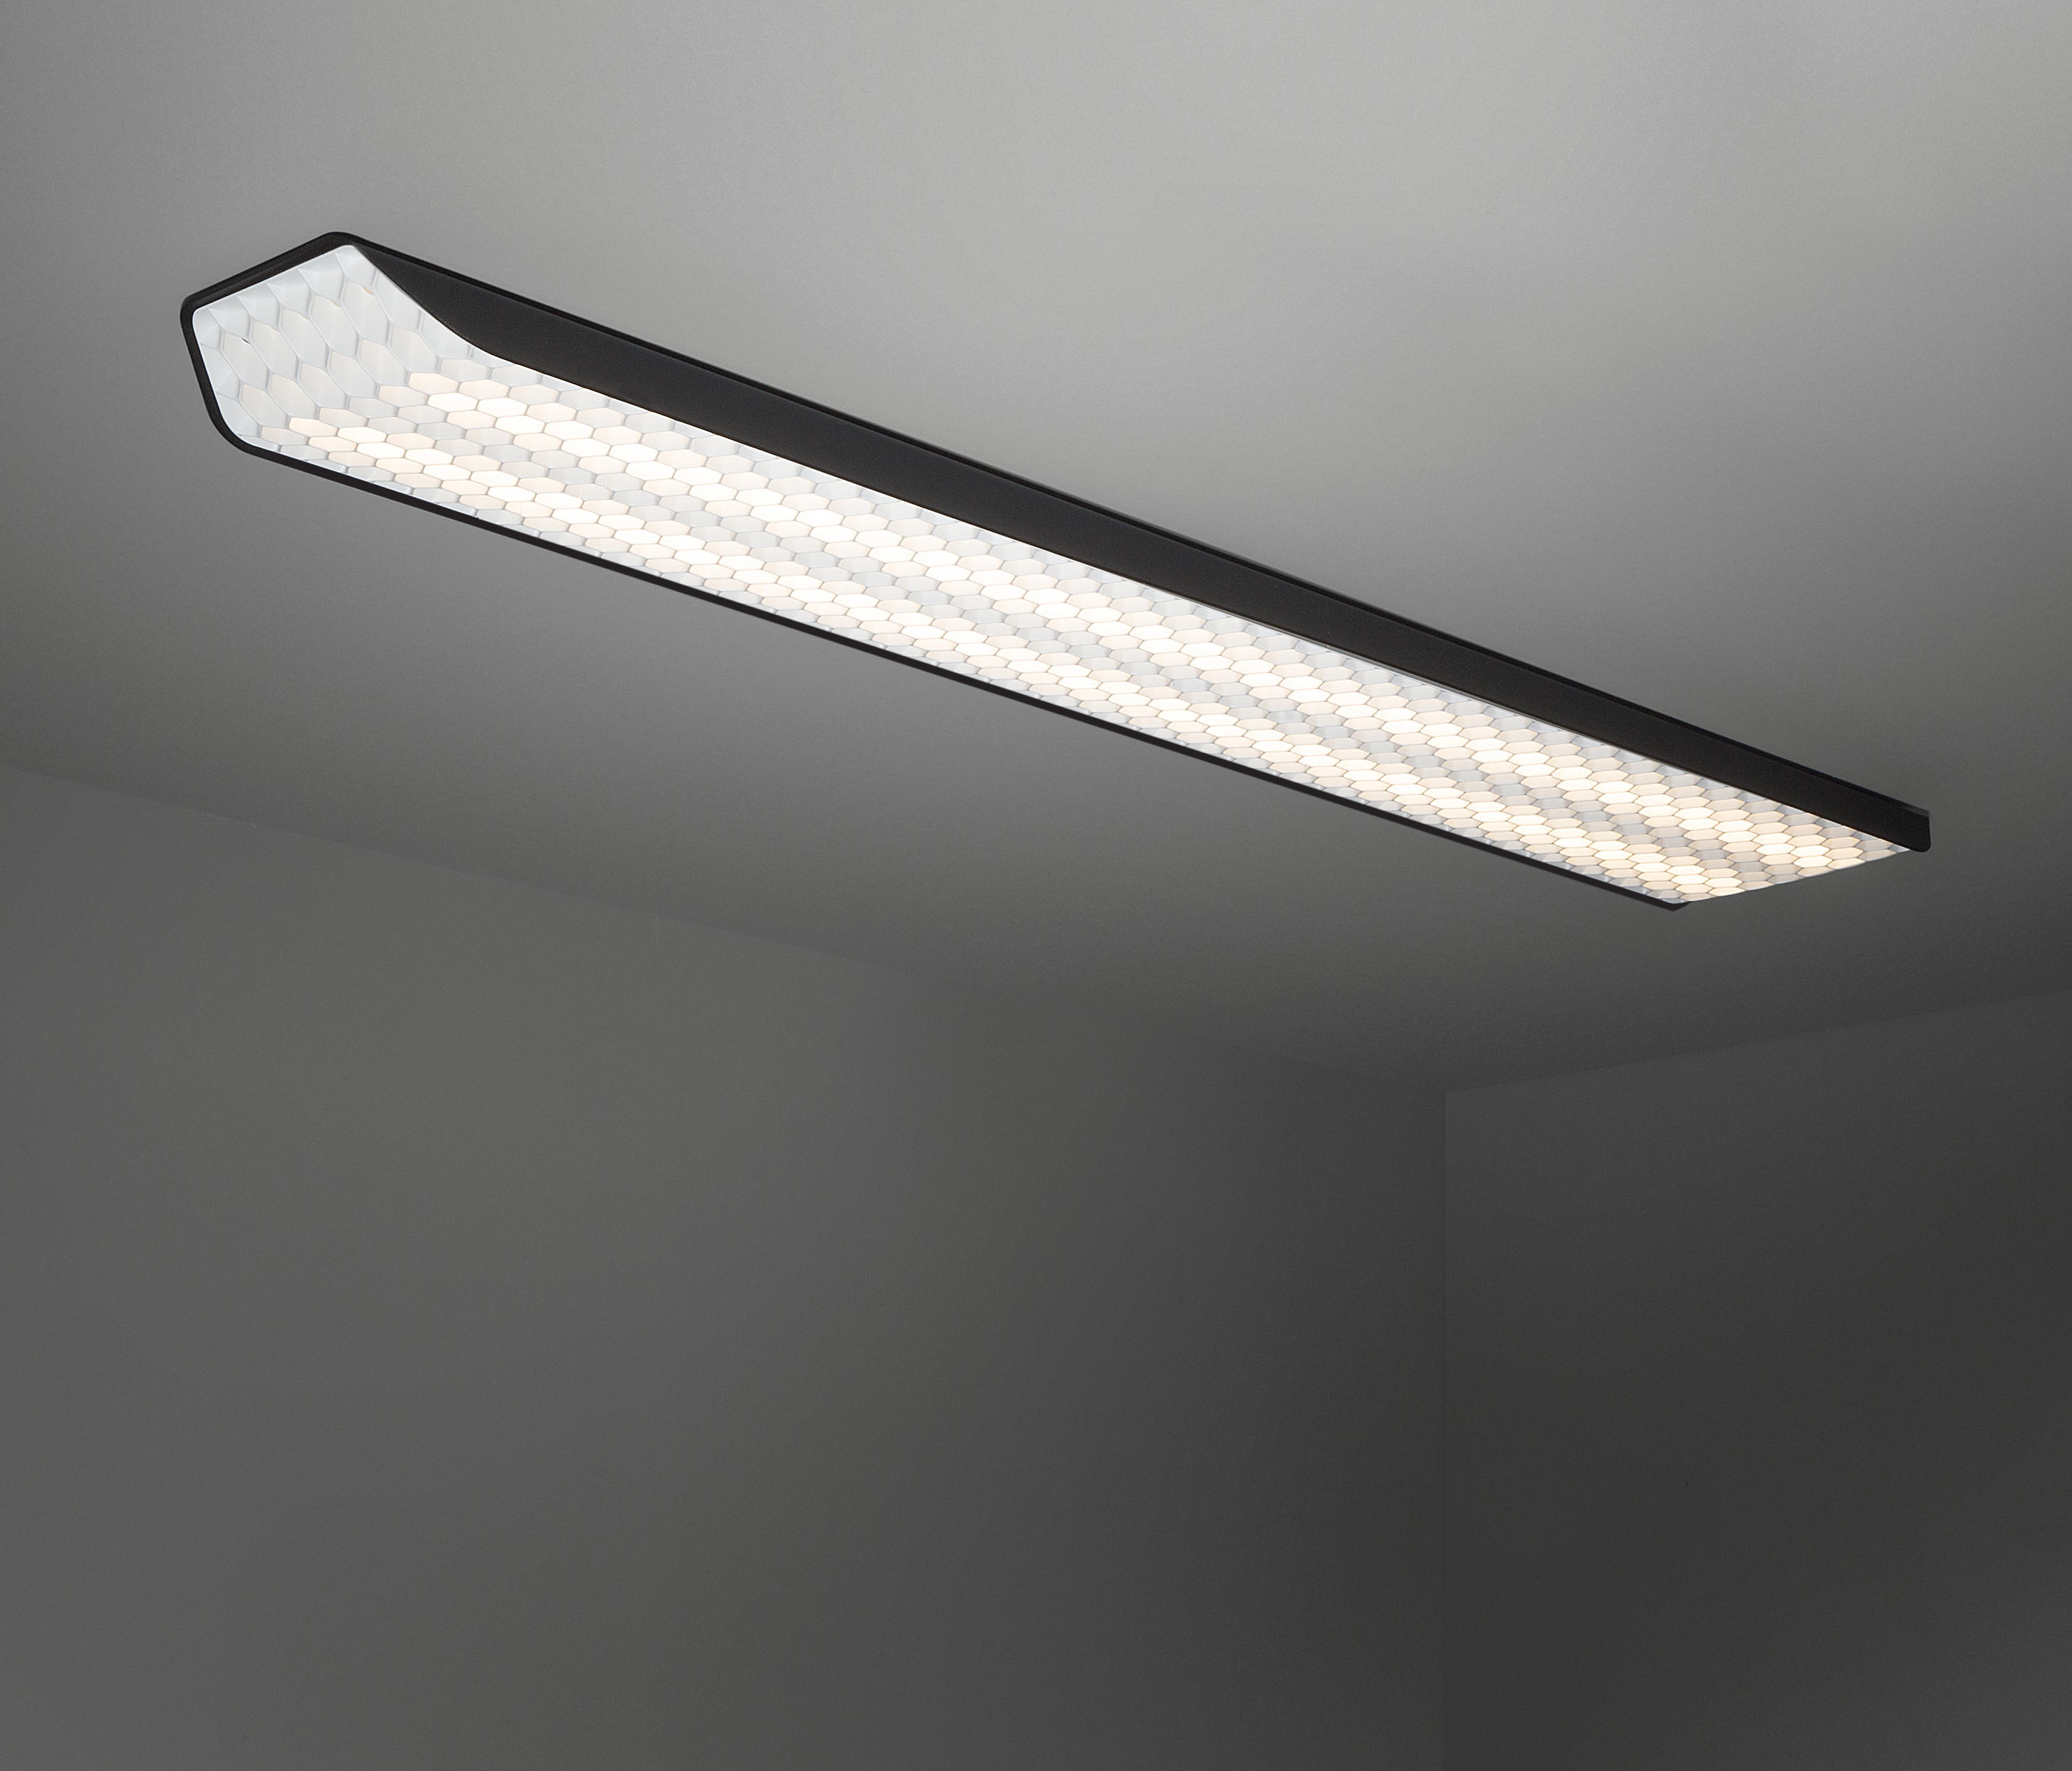 vaeder led dalipushdim1 10v gi by modular lighting instruments ceiling